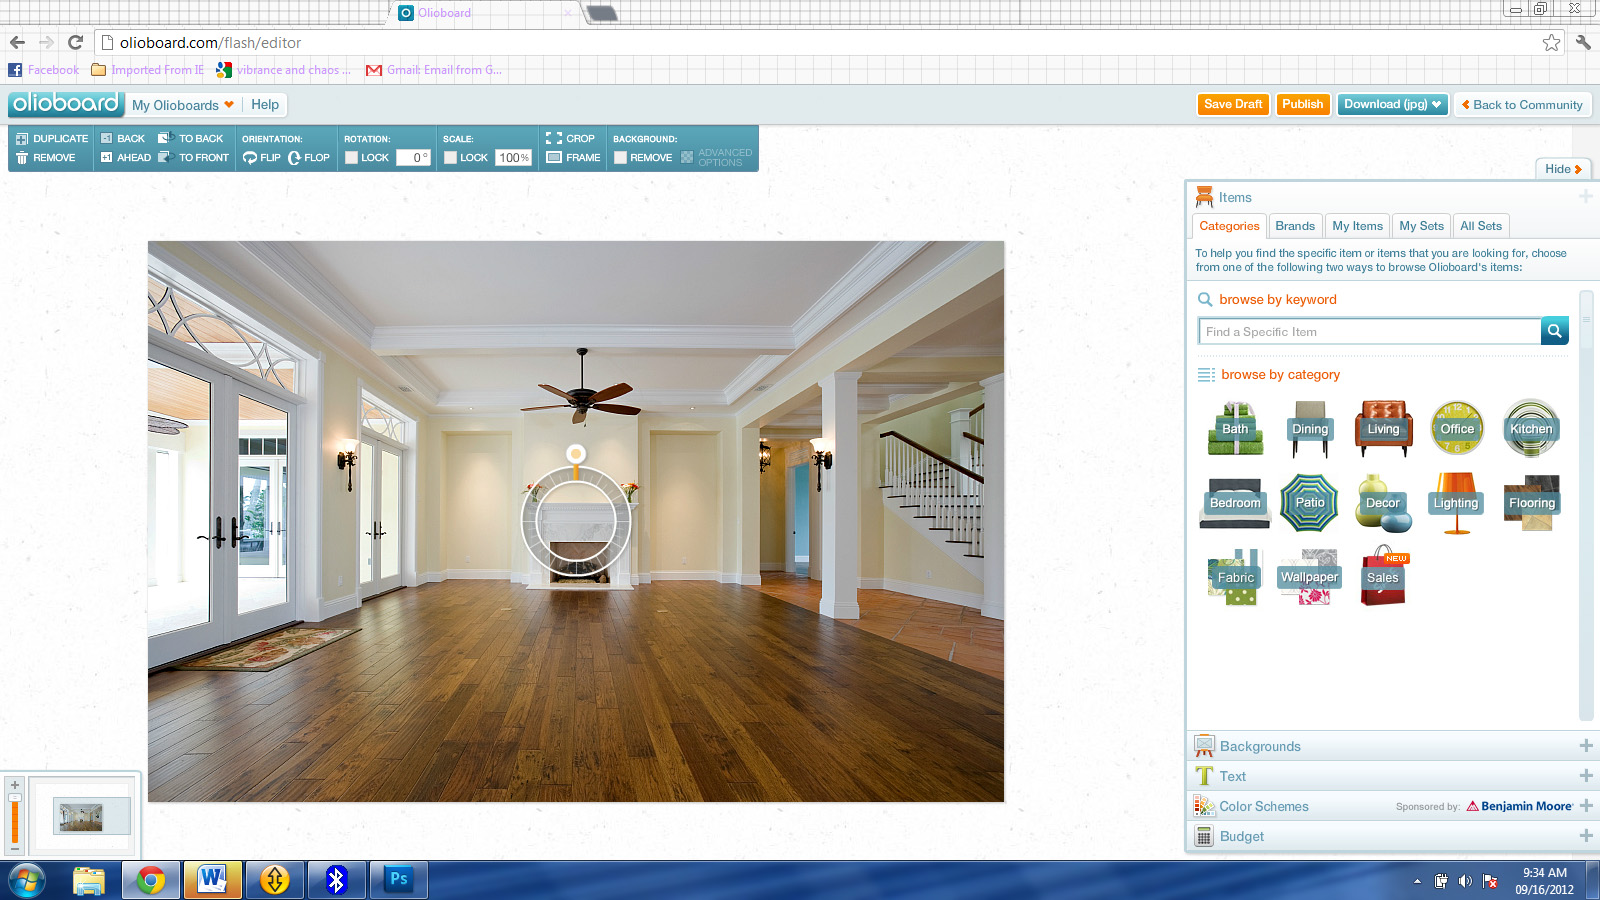 House design online tool - Interior Design Tool Online